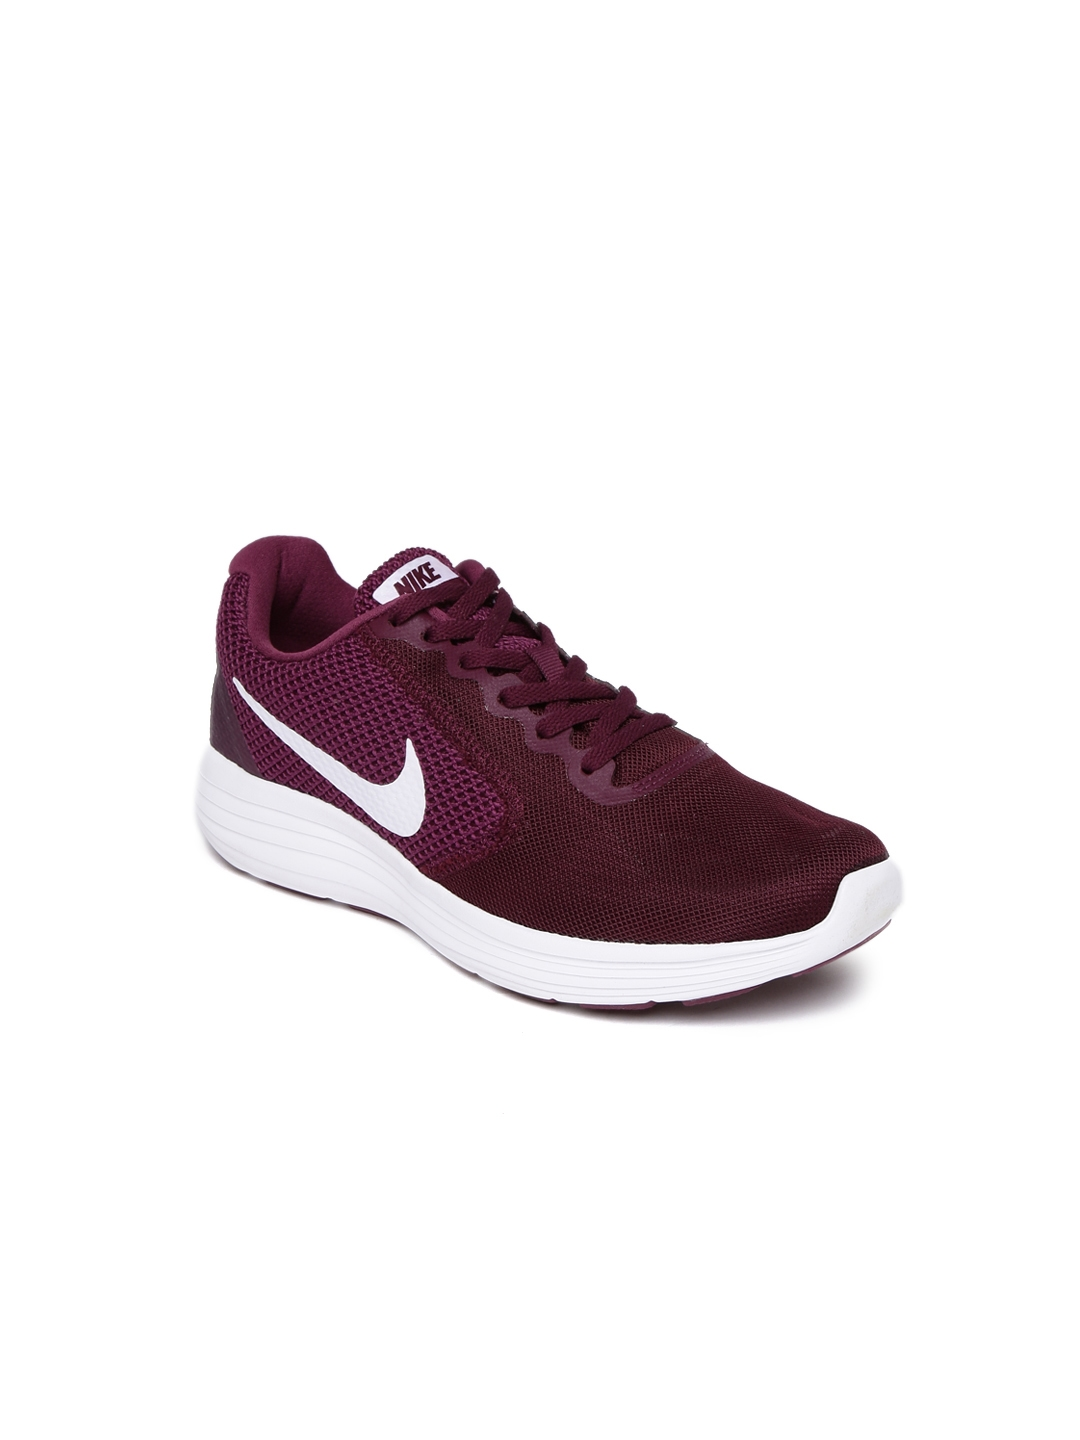 7f4e5a1197b Buy Nike Women Burgundy Revolution 3 Running Shoes - Sports Shoes ...